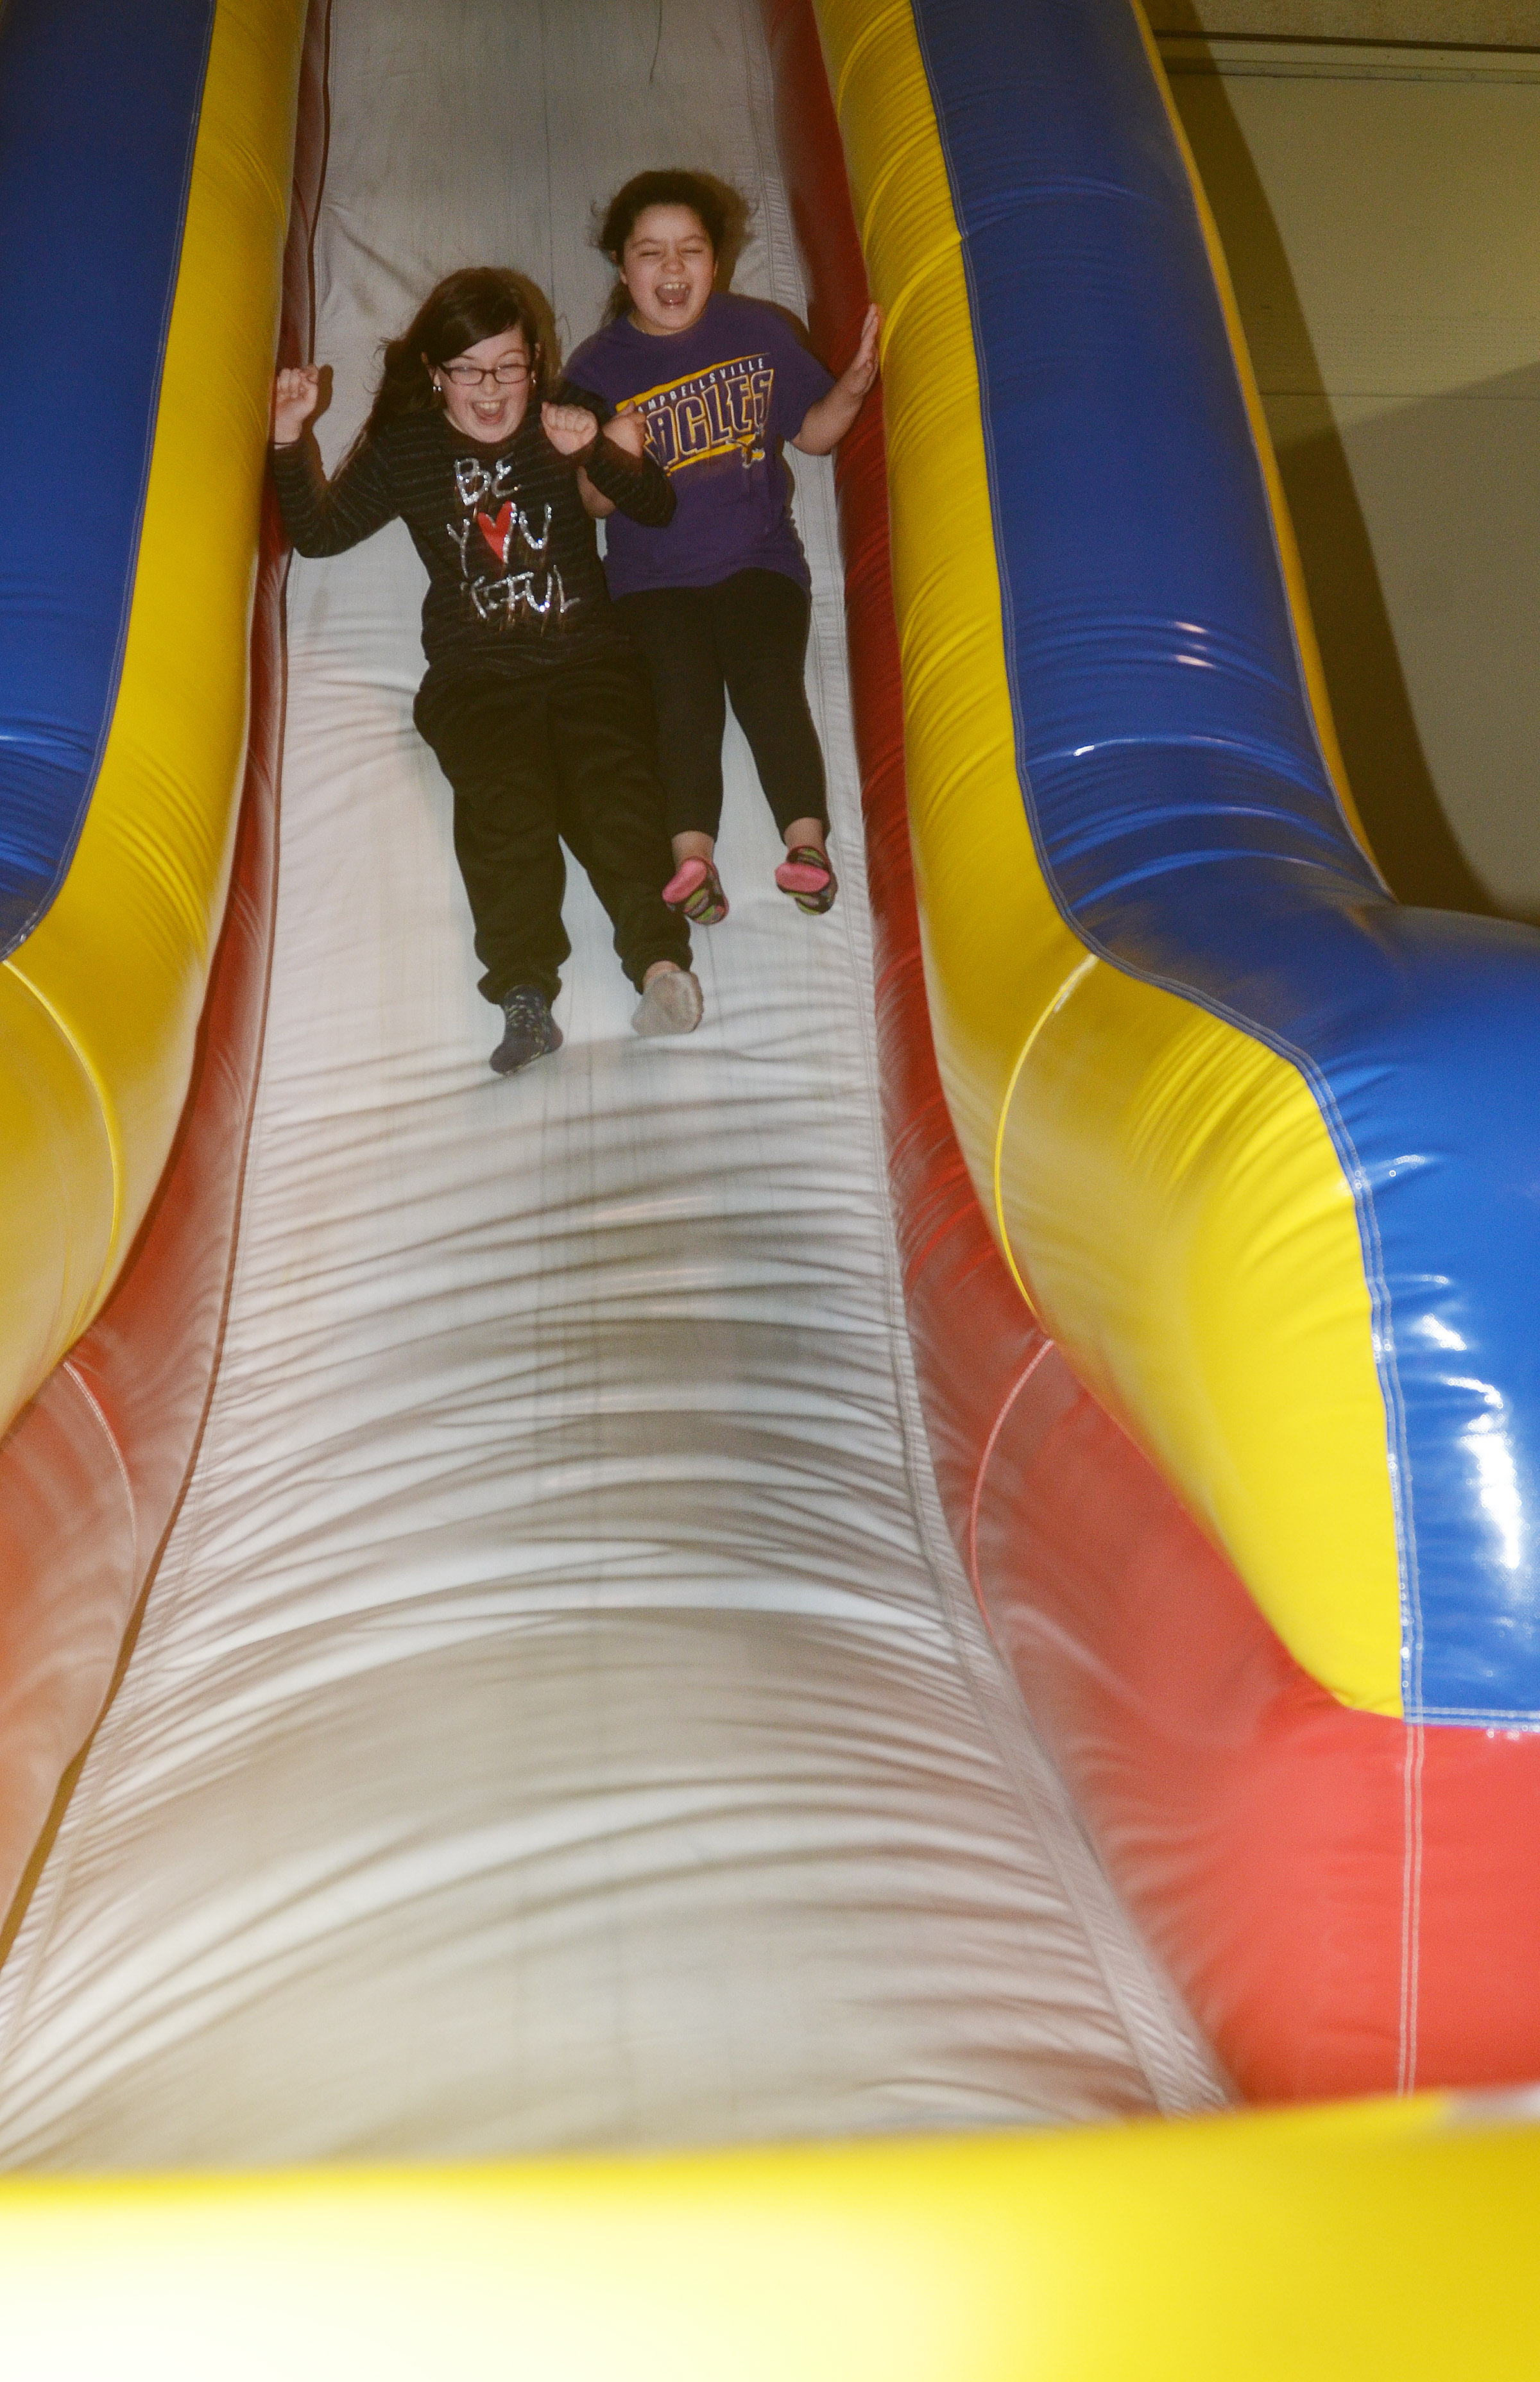 CES fourth-graders Lauren Pace, at left, and Brooklyn Boudreaux slide down an inflatable.